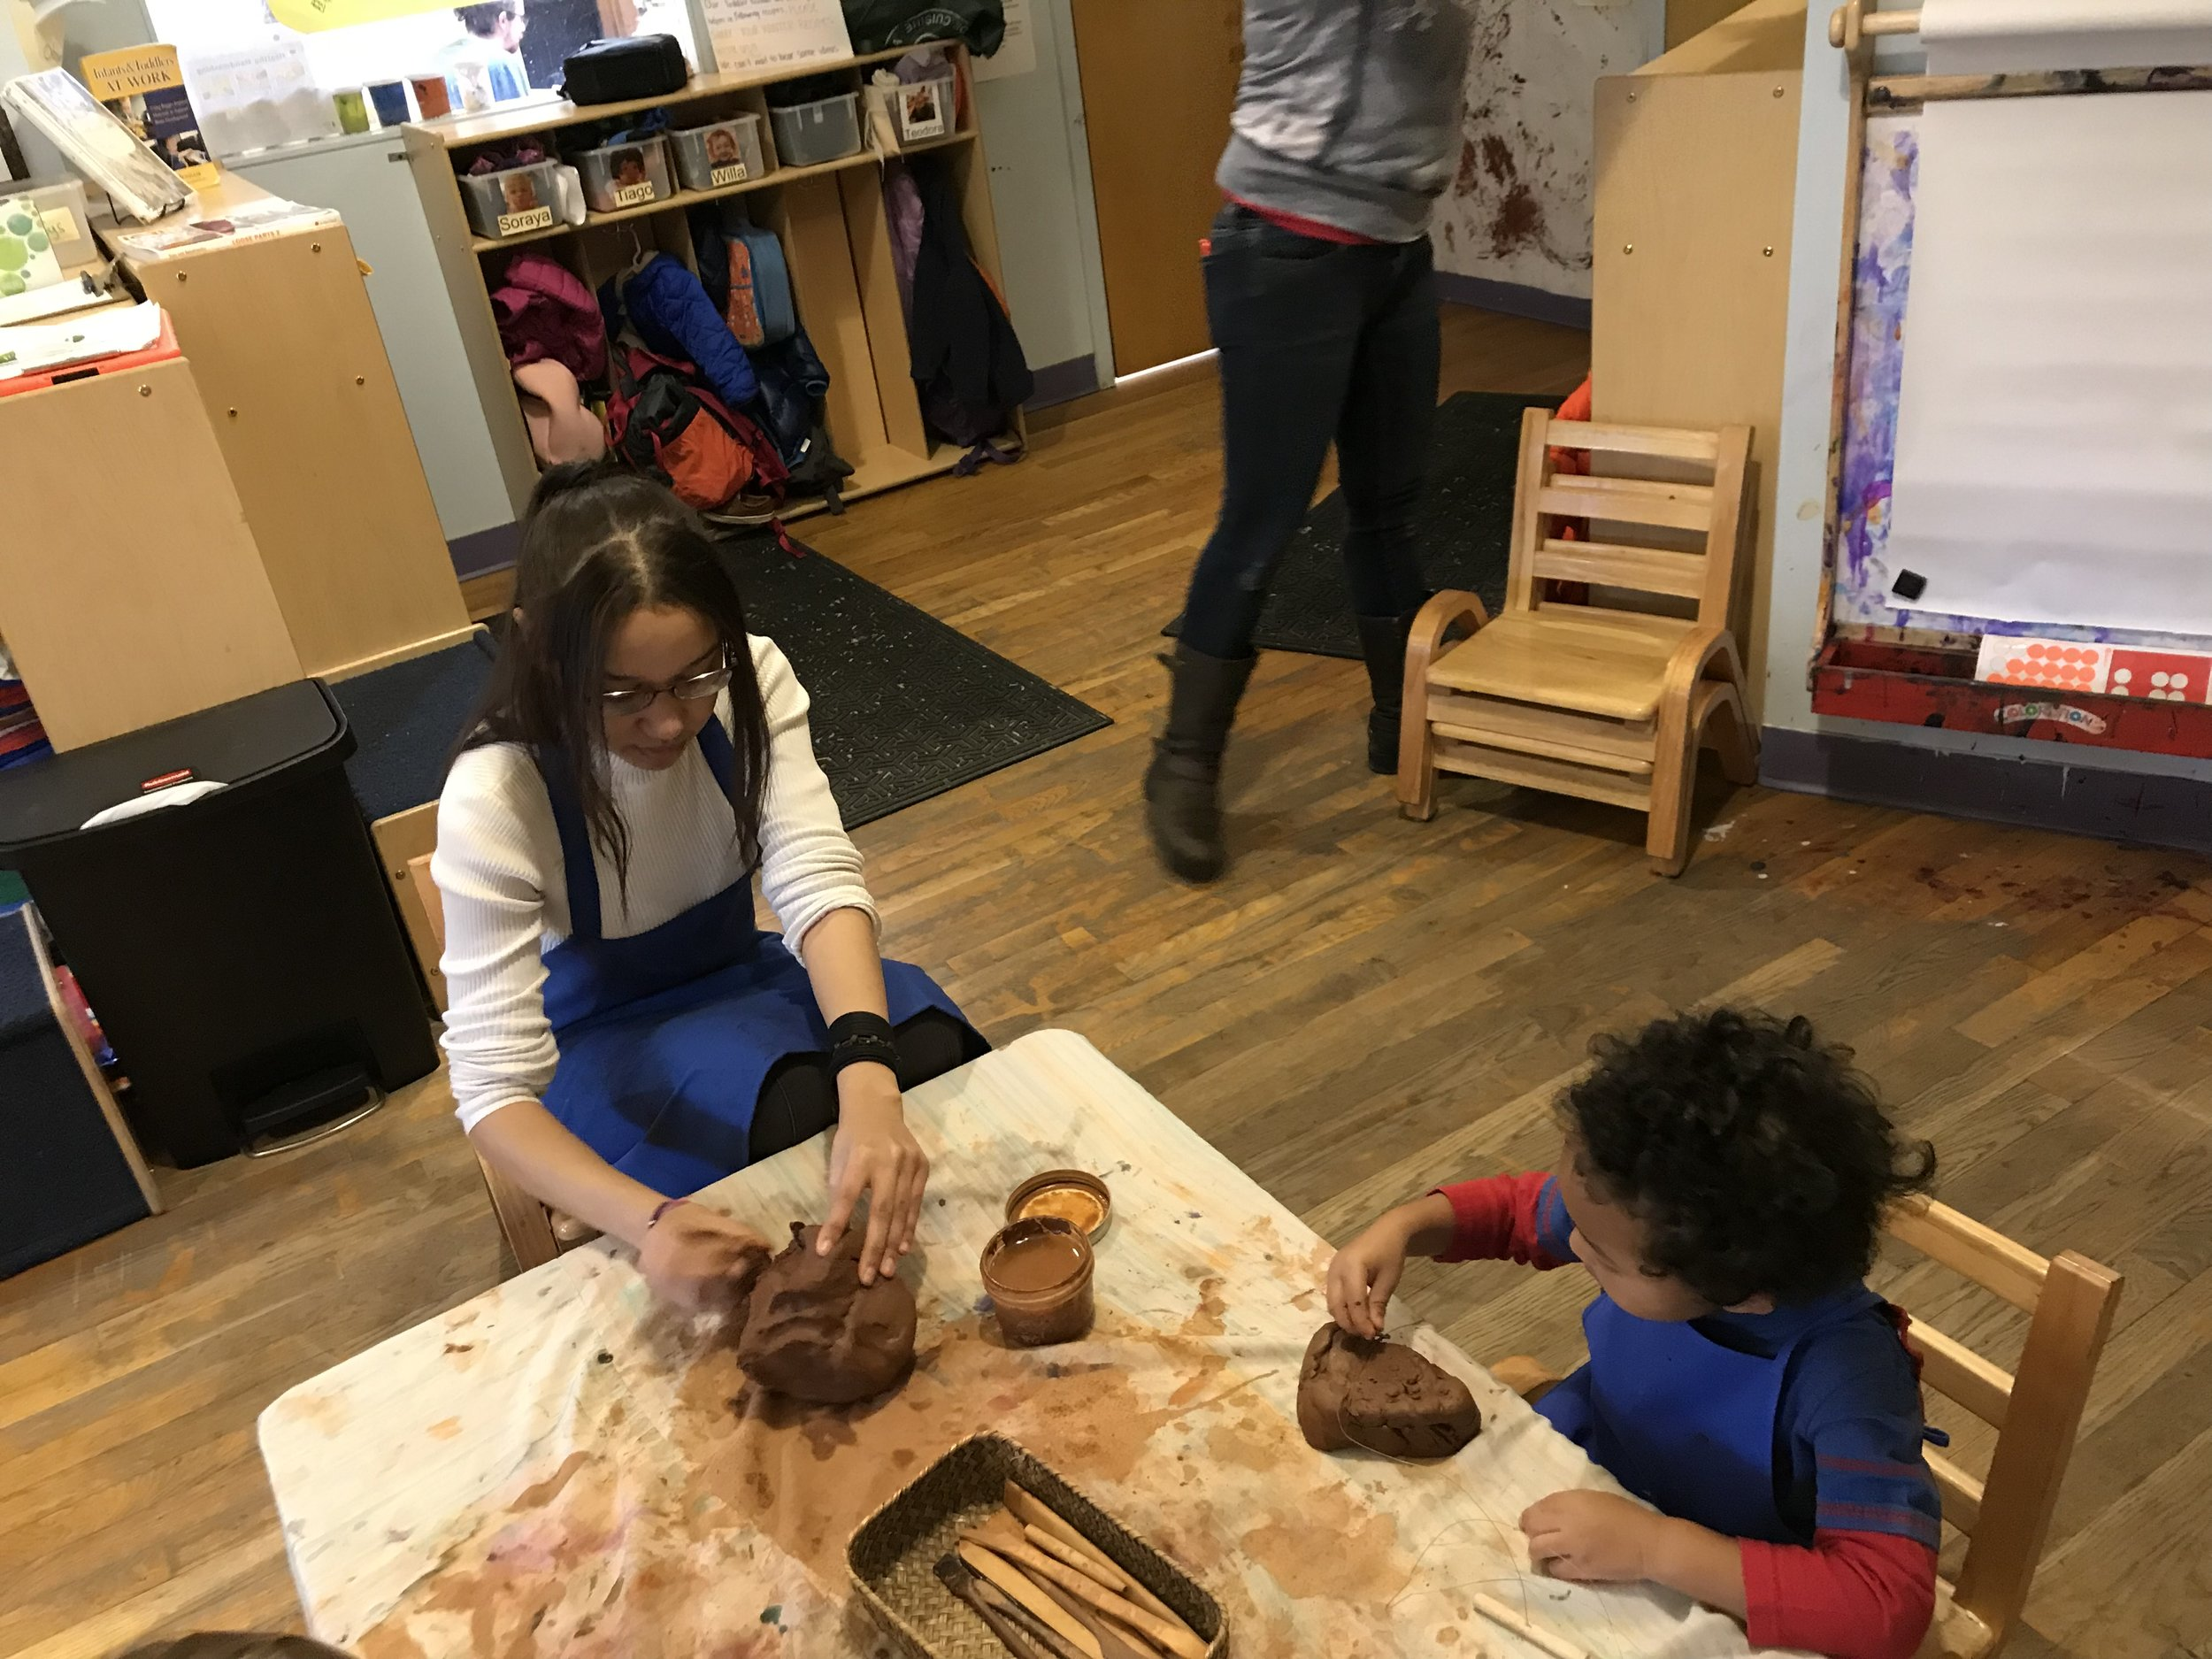 - Please join us in welcoming Marly Barros to our Toddler Classroom. Marly is a senior at Commuity Charter School of Cambridge and is doing her senior internship with us. Marly will be with us on Wednesdays from 8:30-3:30